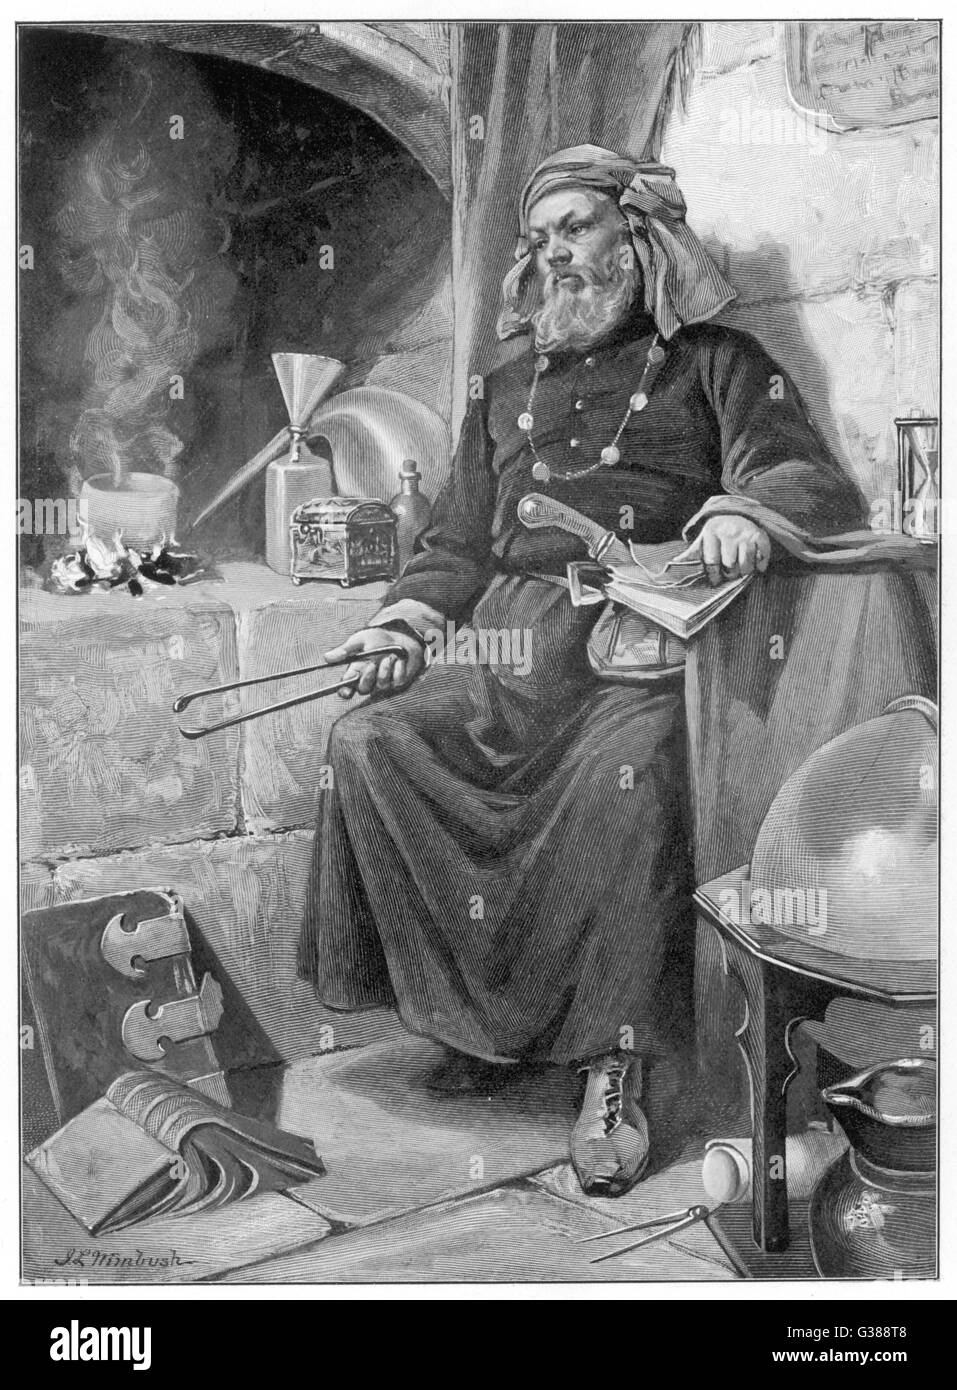 Alchemist at work in his  laboratory         Date: Middle Ages - Stock Image